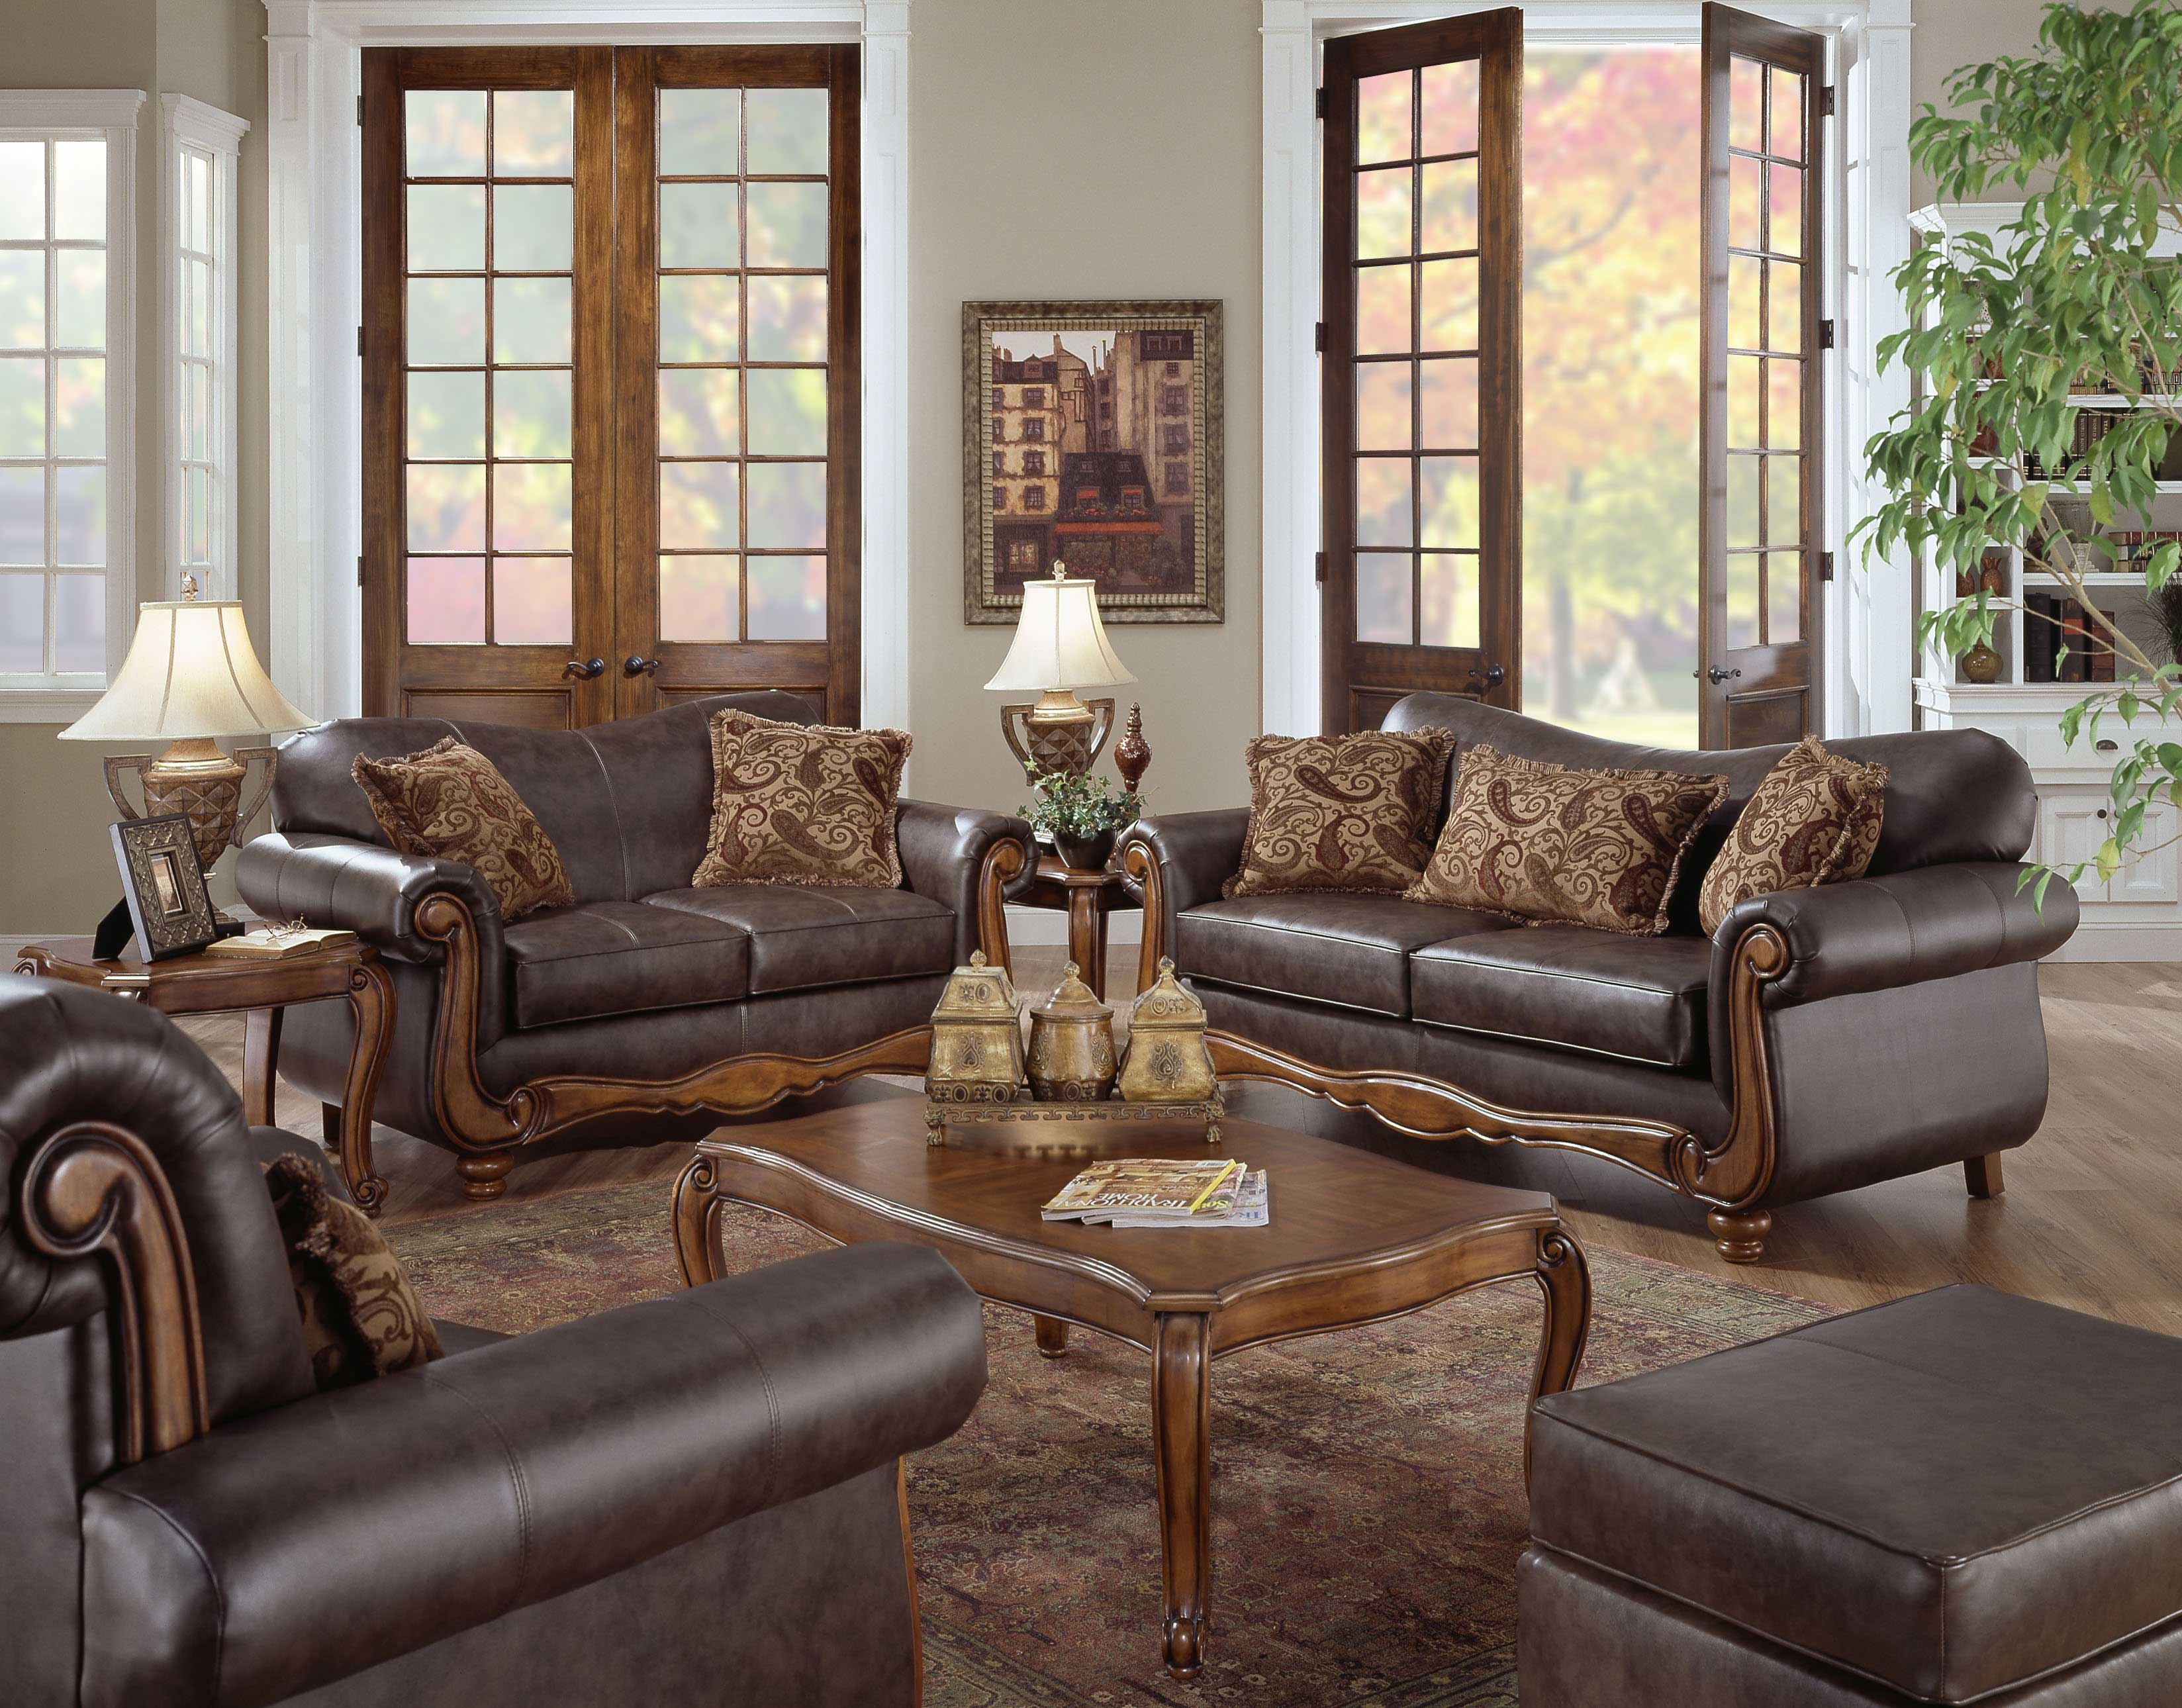 Living Room Sofa Set : Cheap Living Room Sets Under $500  Roy Home Design